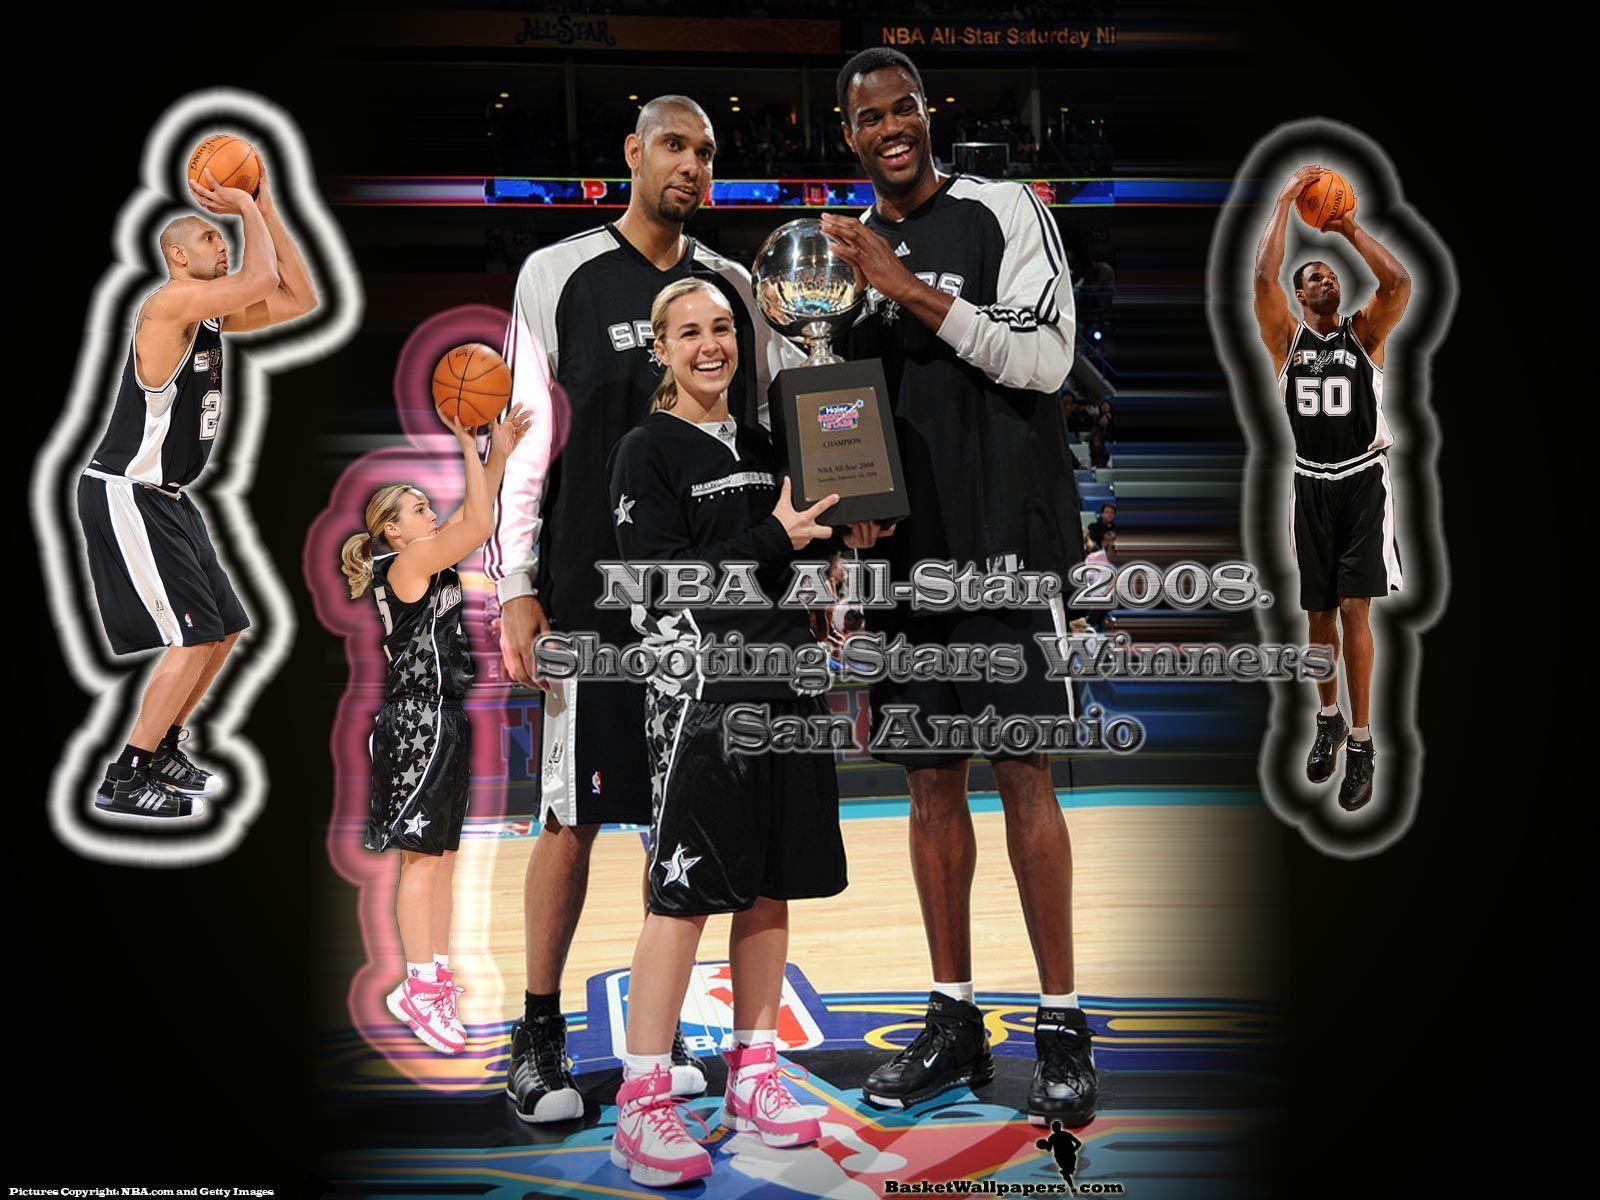 San Antonio Spurs Shooting Stars Wallpaper | Basketball Wallpapers ...